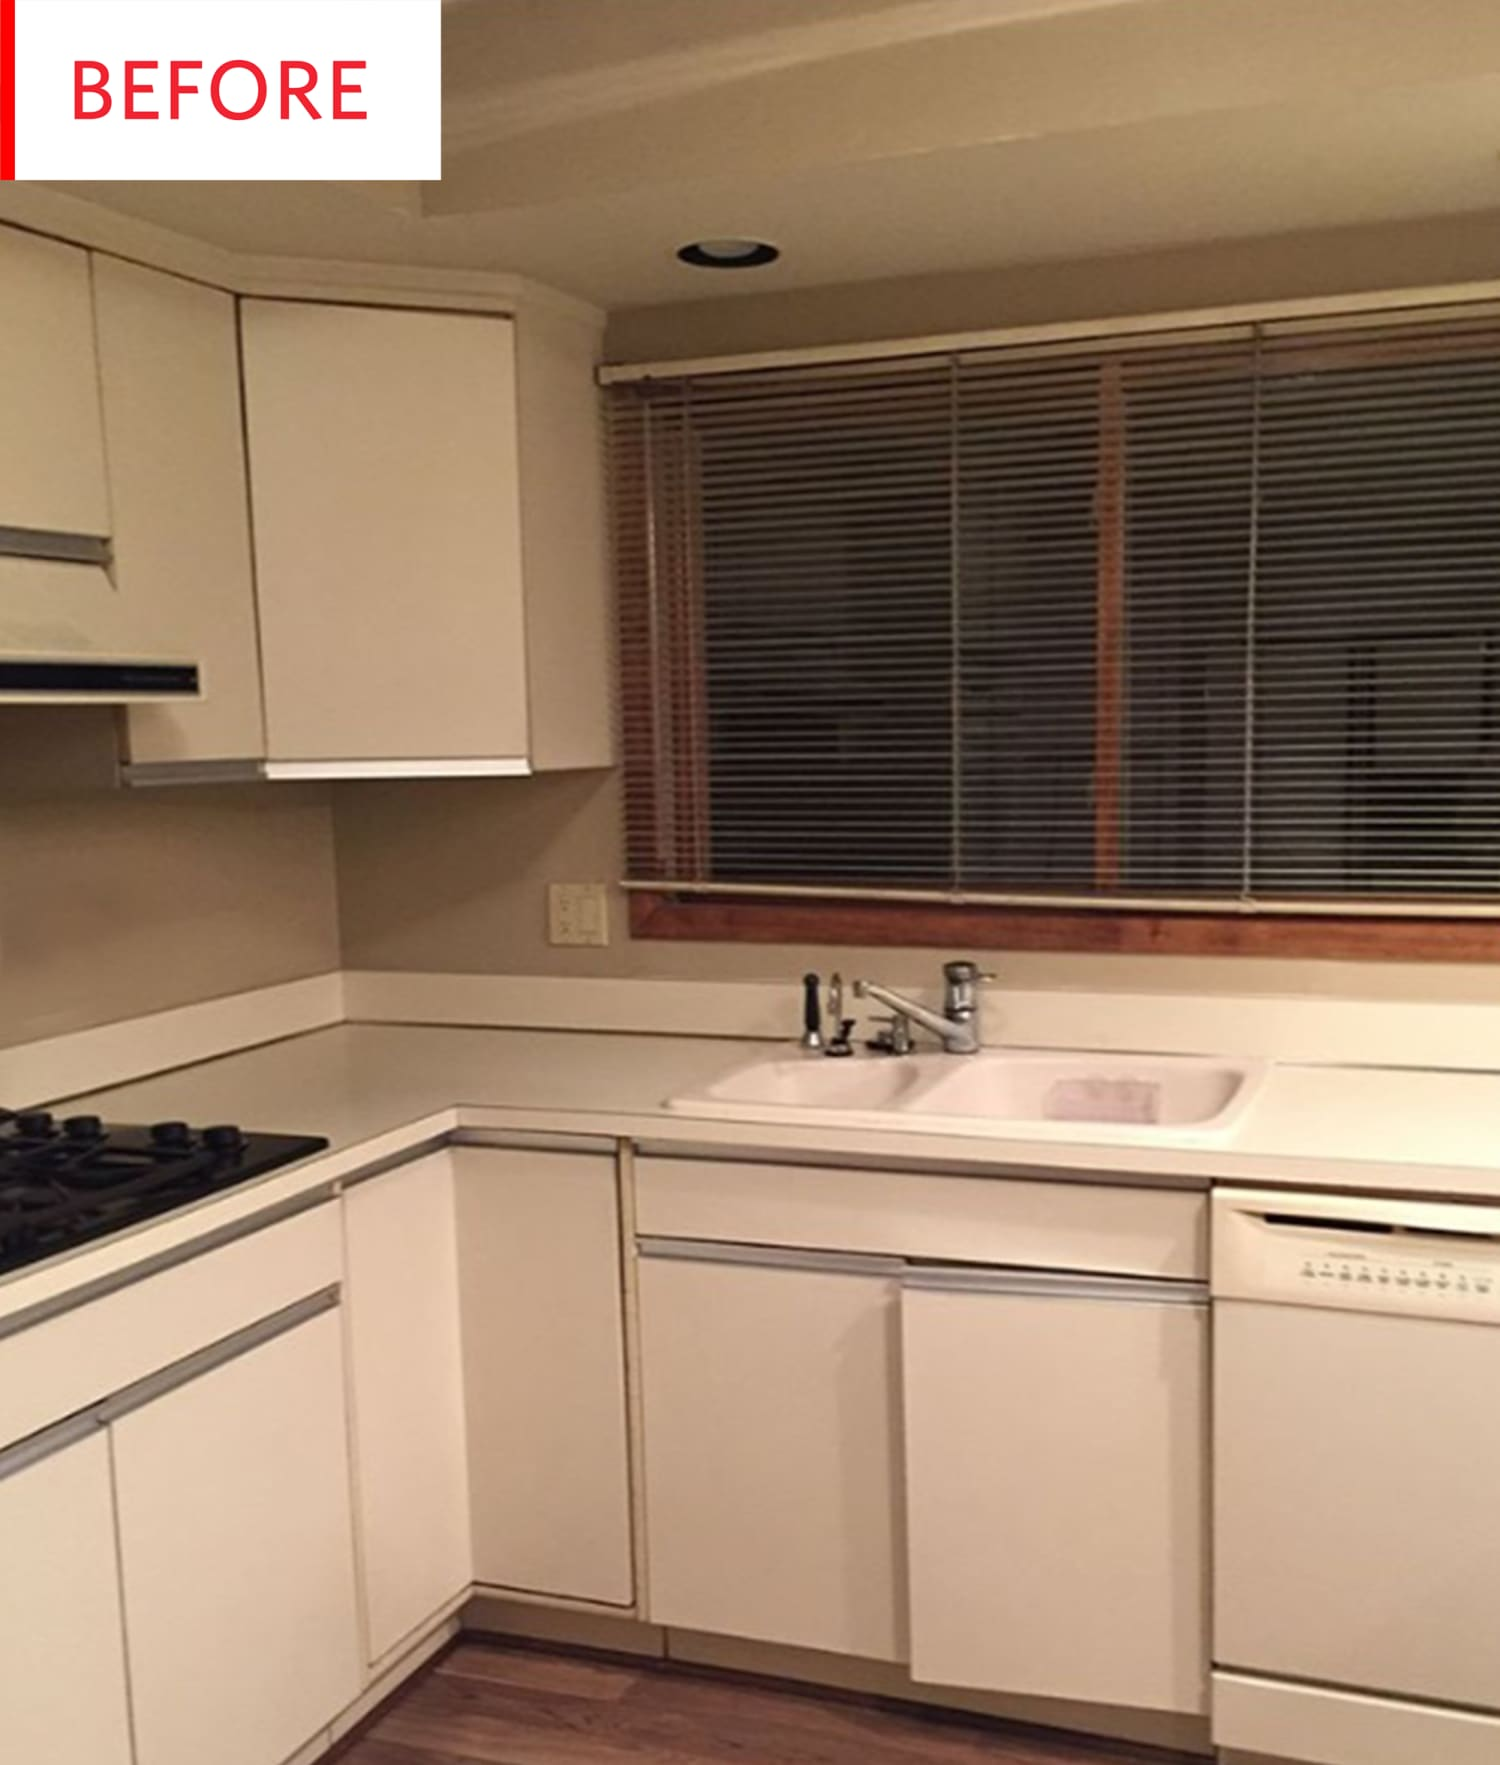 Before and After: IKEA Brings Some Drama to This Newly Remodeled Kitchen